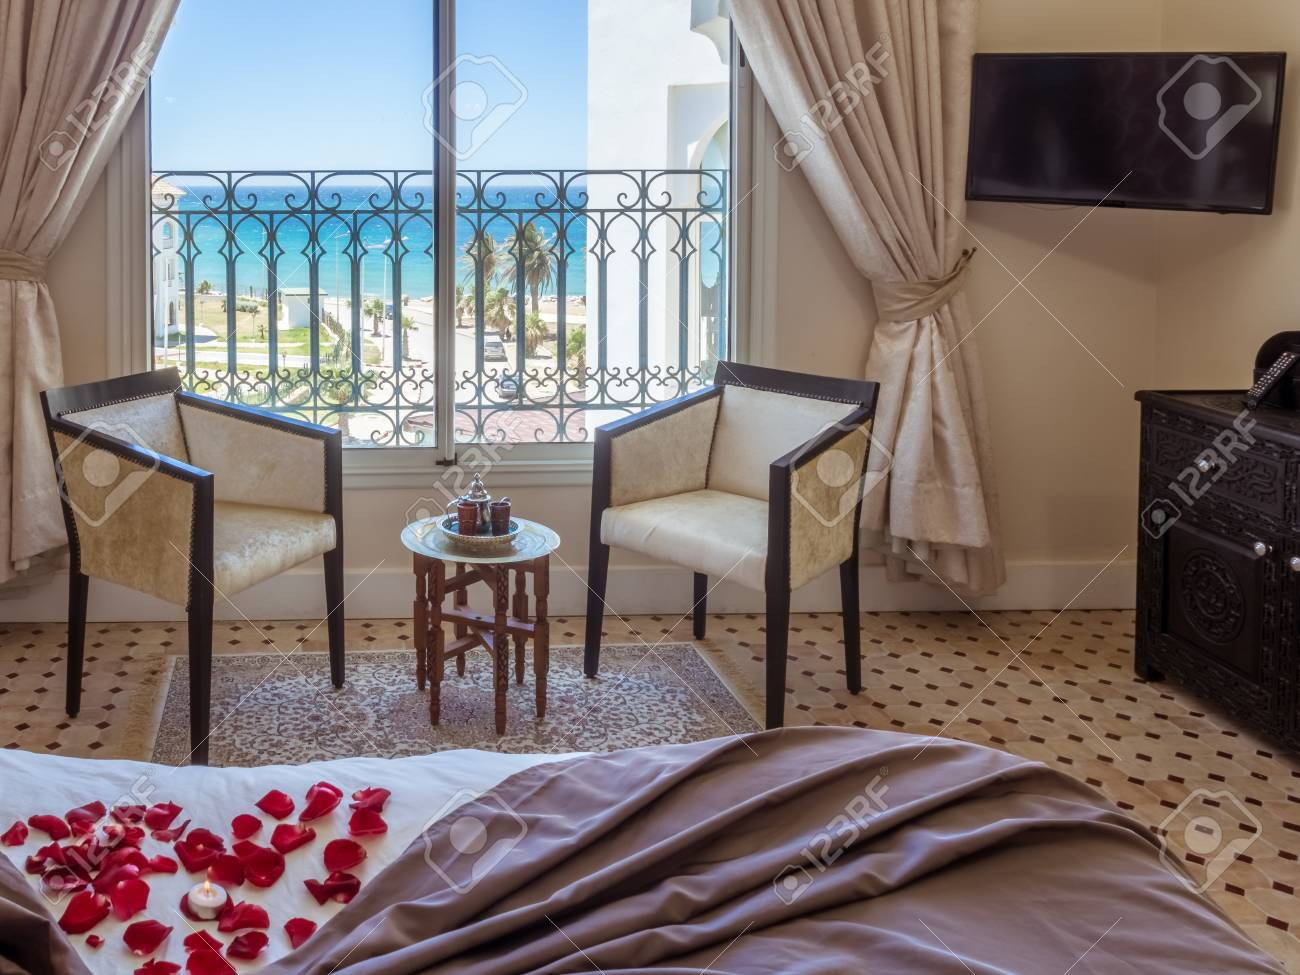 Hotel Room In Moroccan Style With Sea View Stock Photo, Picture And ...